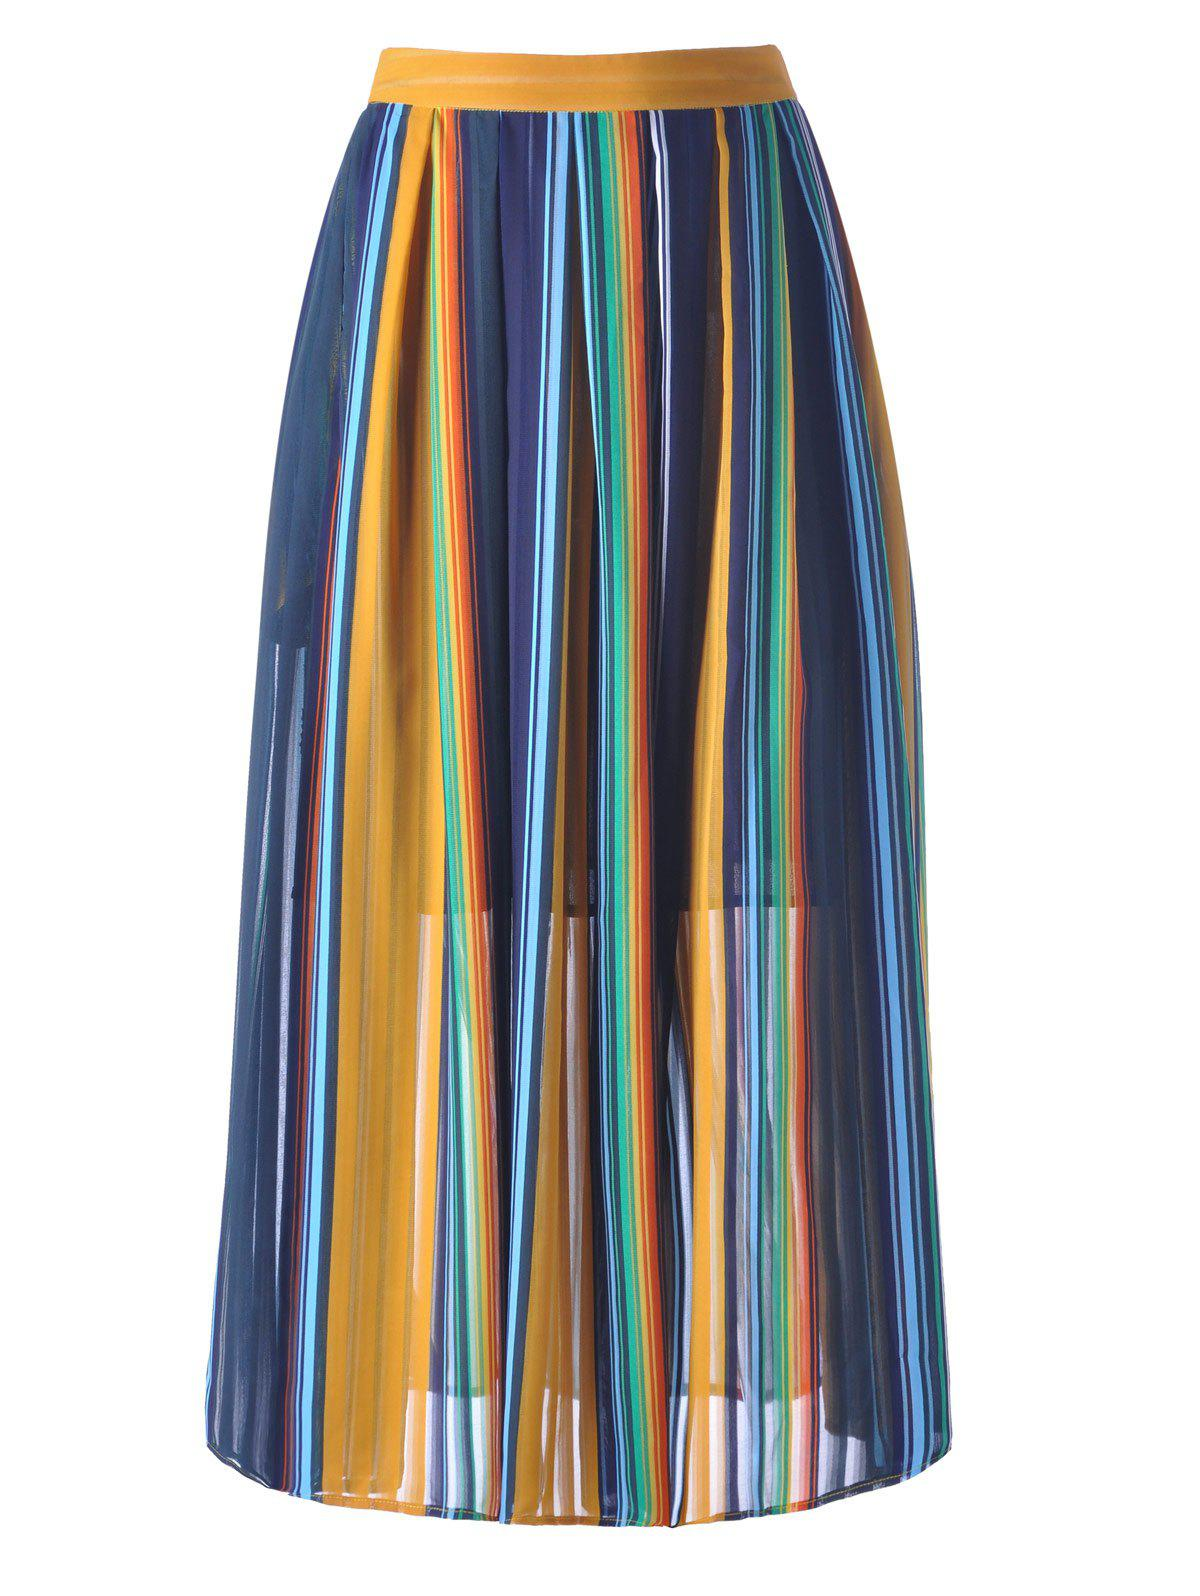 Women's High Waisted Stripe Midi Skirt - PURPLISH BLUE M